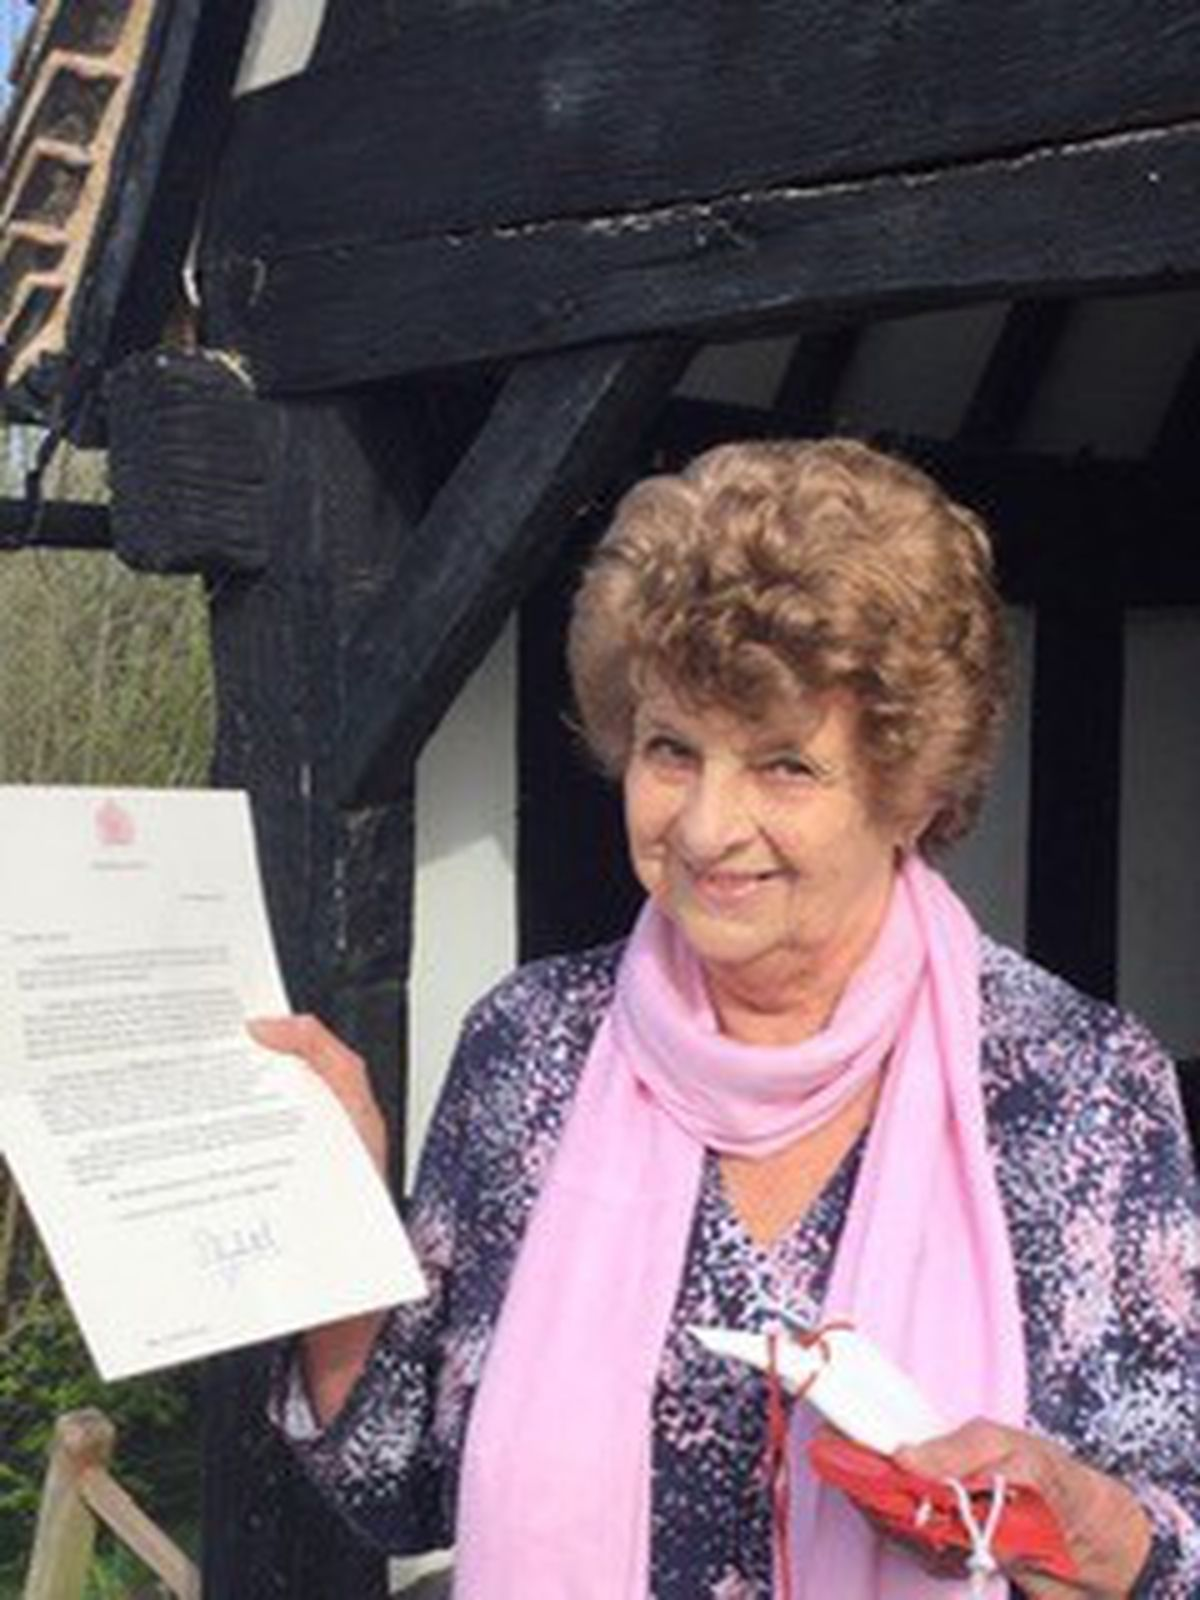 Lynne Lloyd said her 32 years as church warden serving the ancient, timber framed Church of St Peter in Melverley had been a wonderful journey of faith, an education and a joy